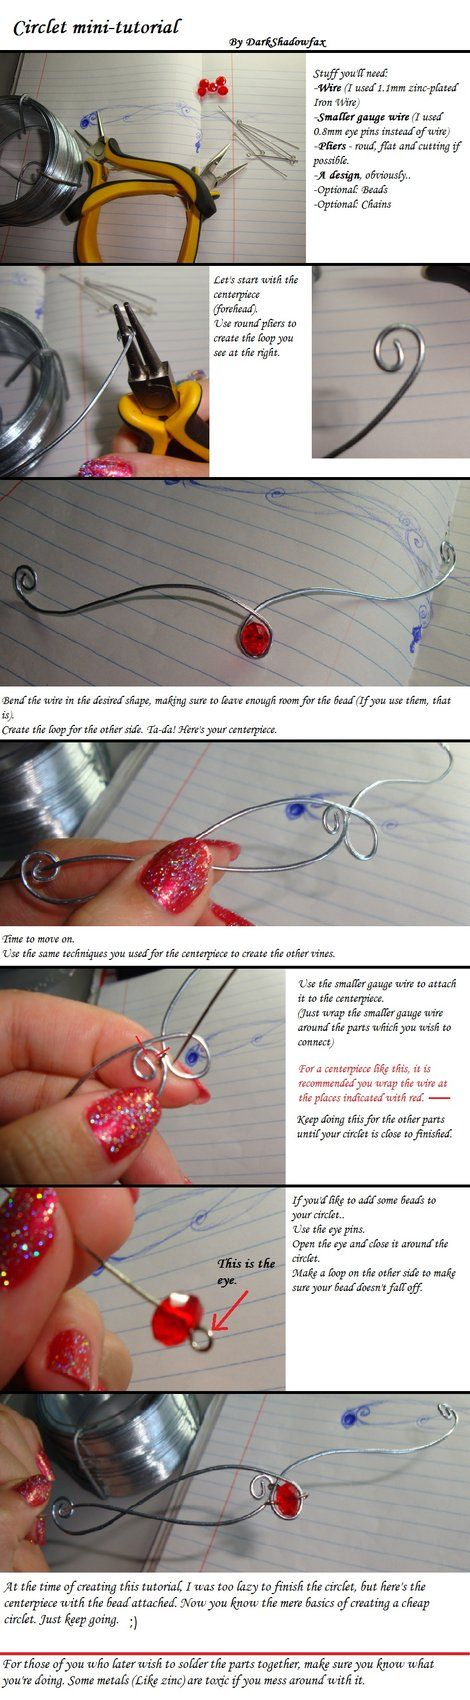 Circlet tutorial